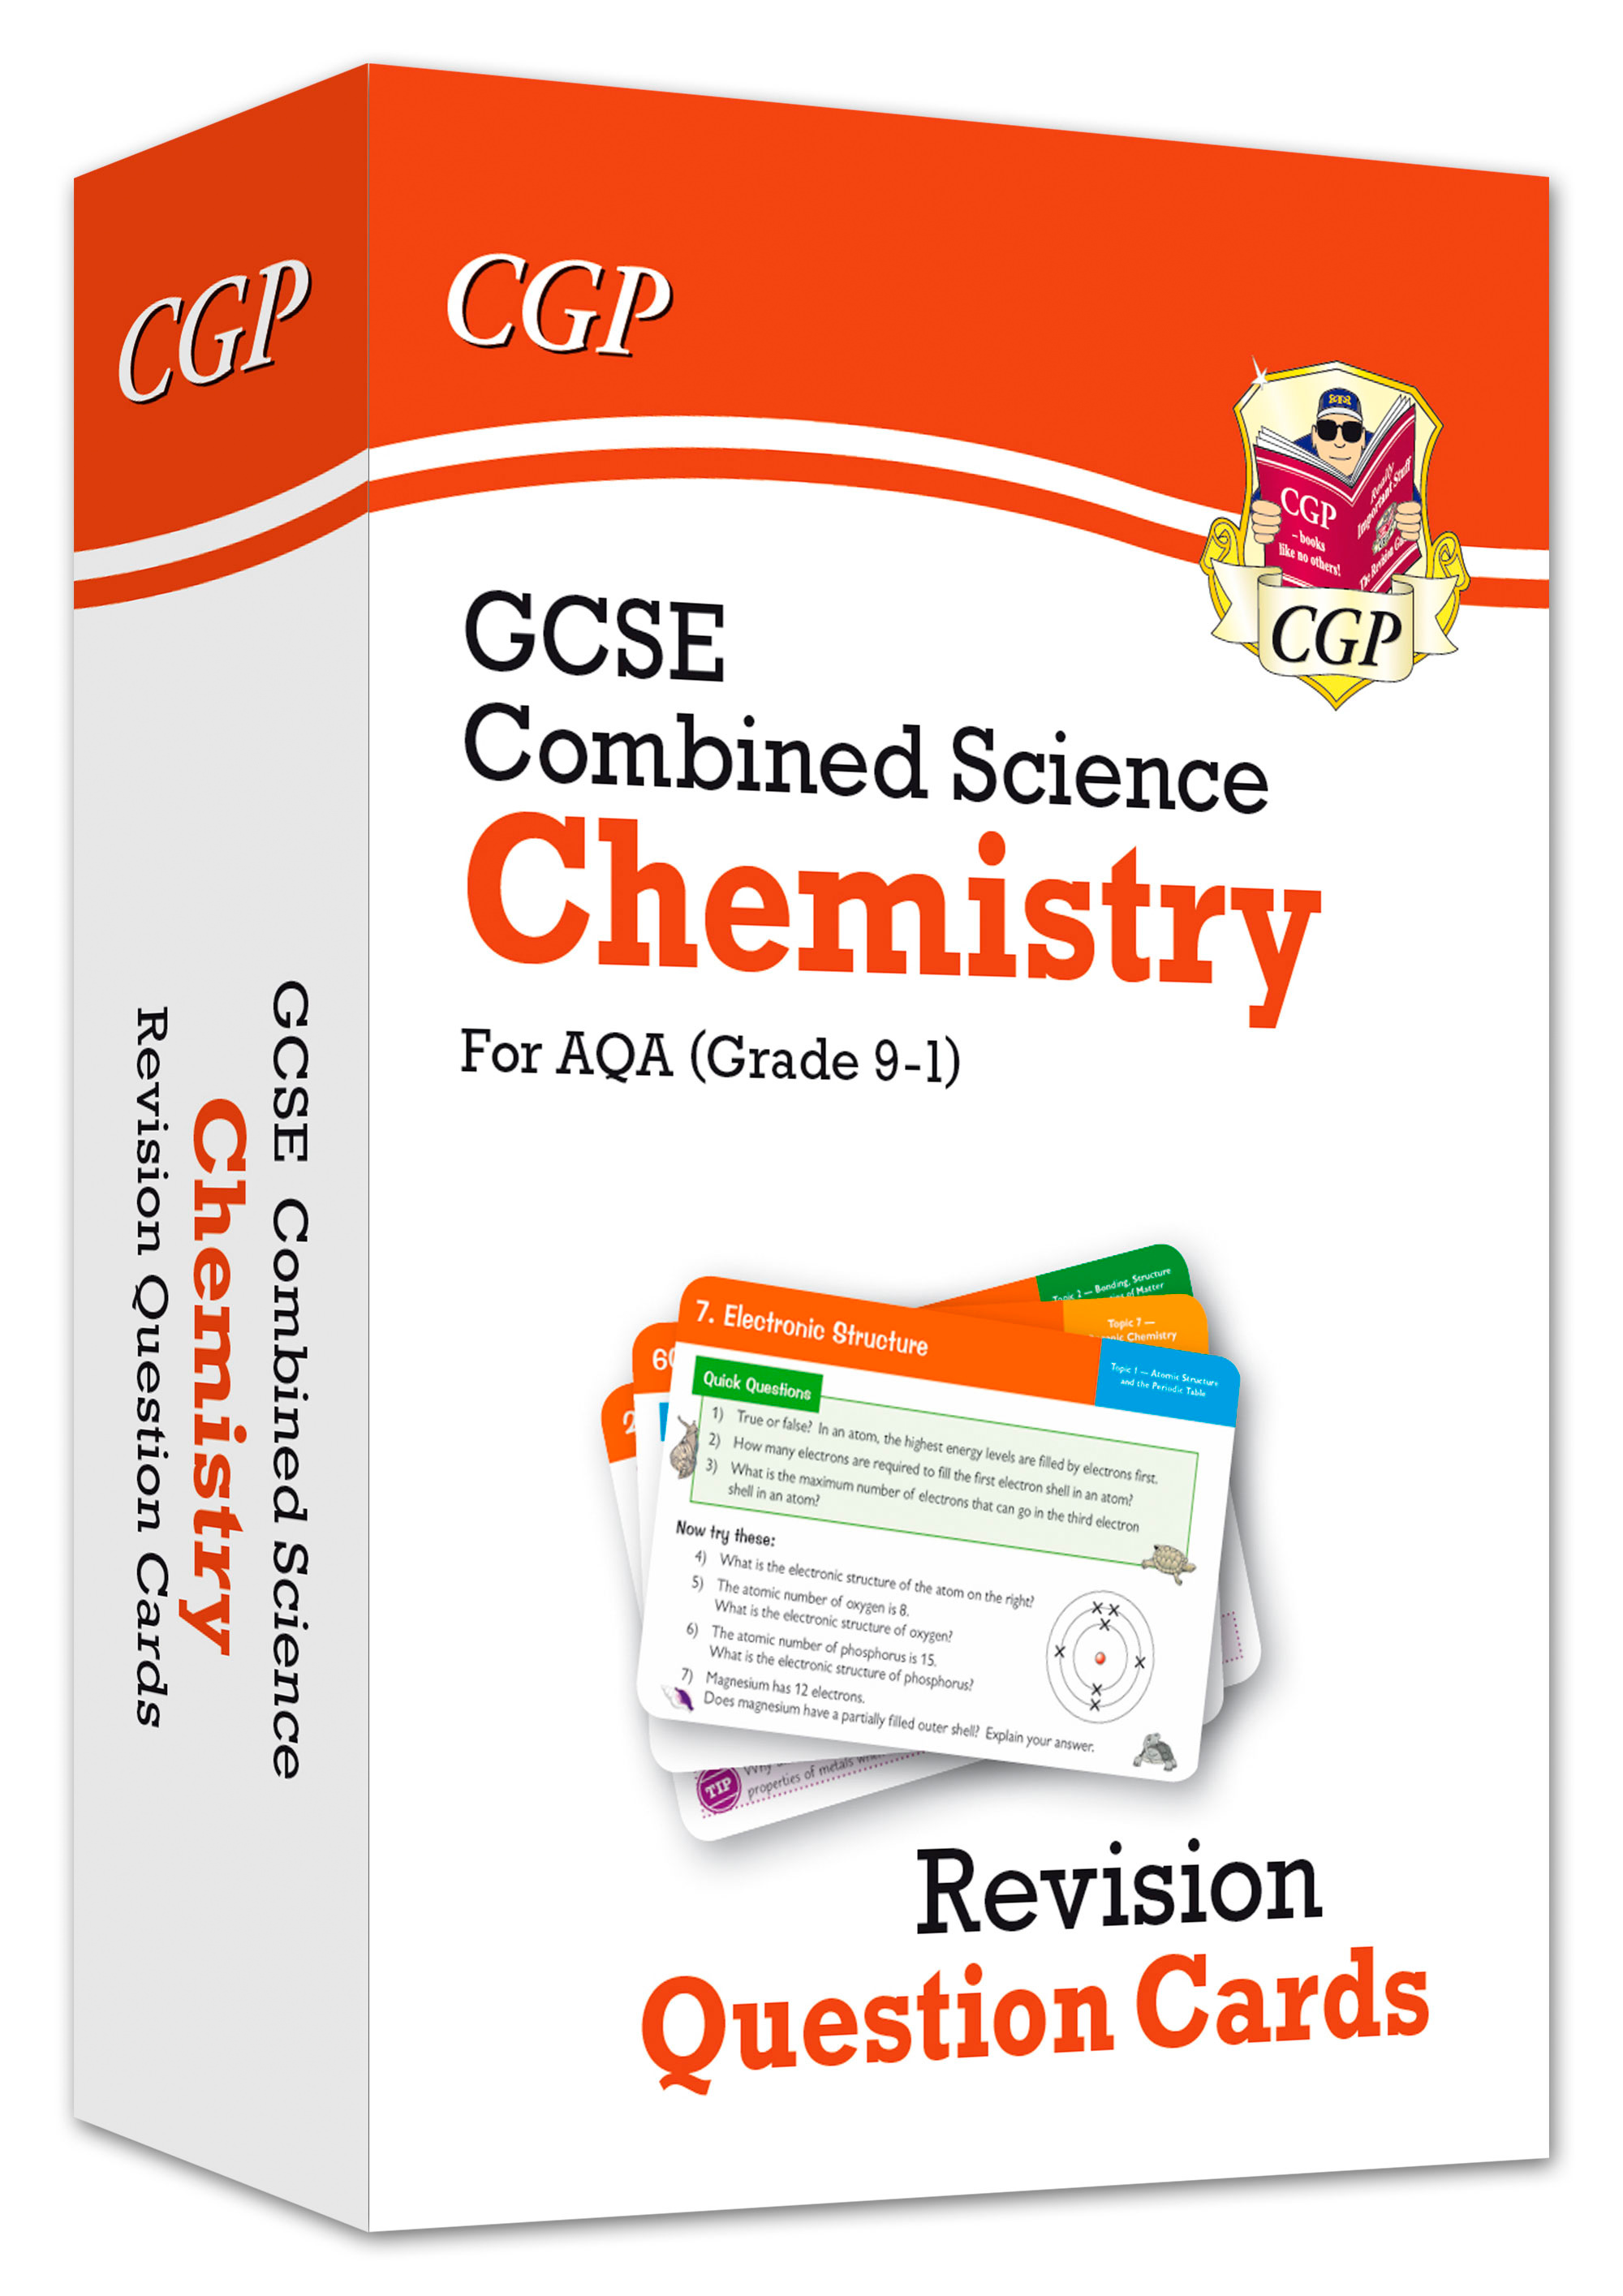 SCCAF41DK - New 9-1 GCSE Combined Science: Chemistry AQA Revision Question Cards